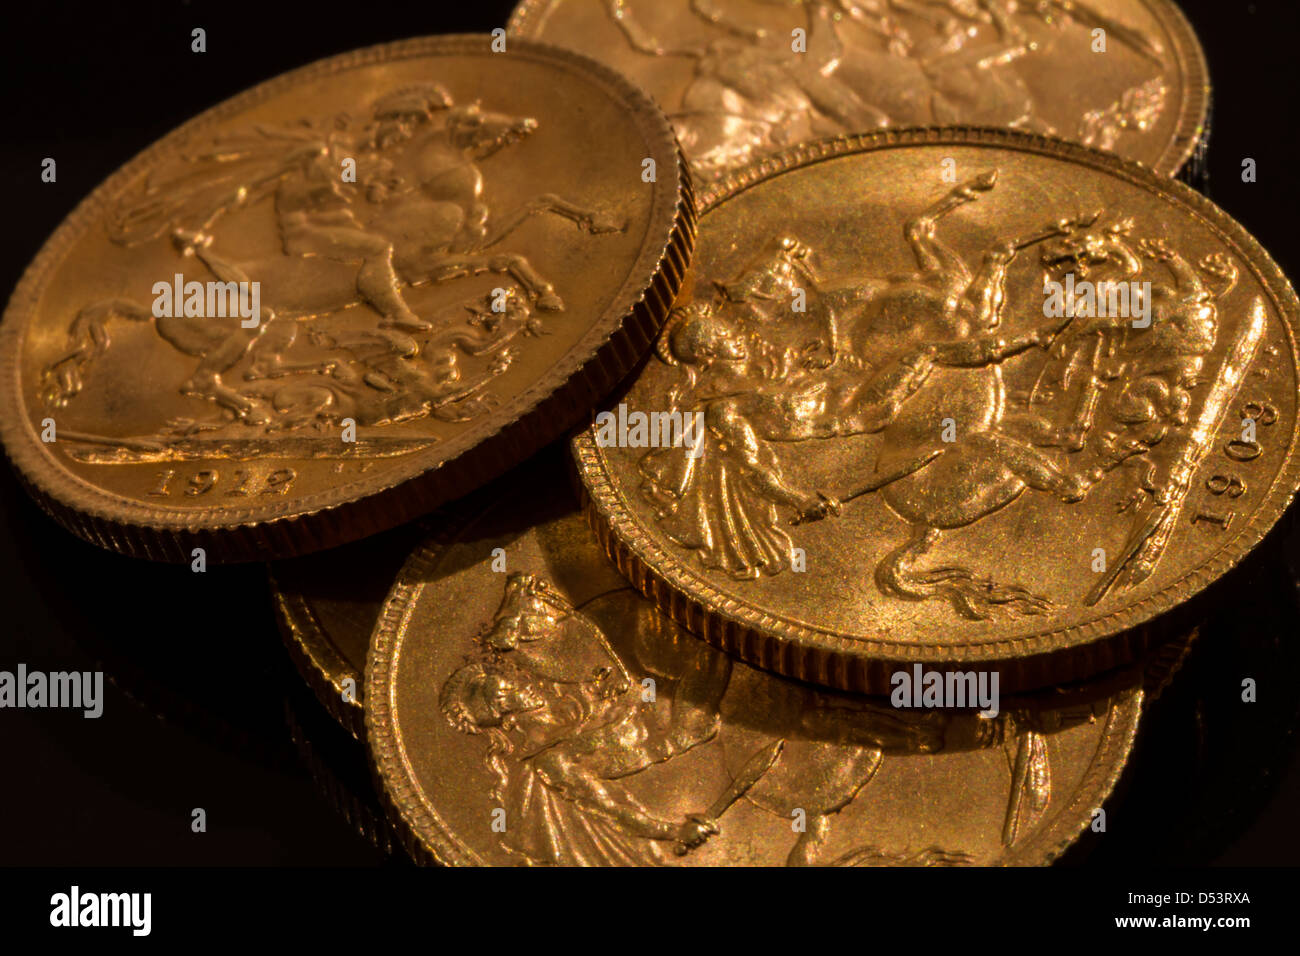 Gold Sovereigns - Stock Image